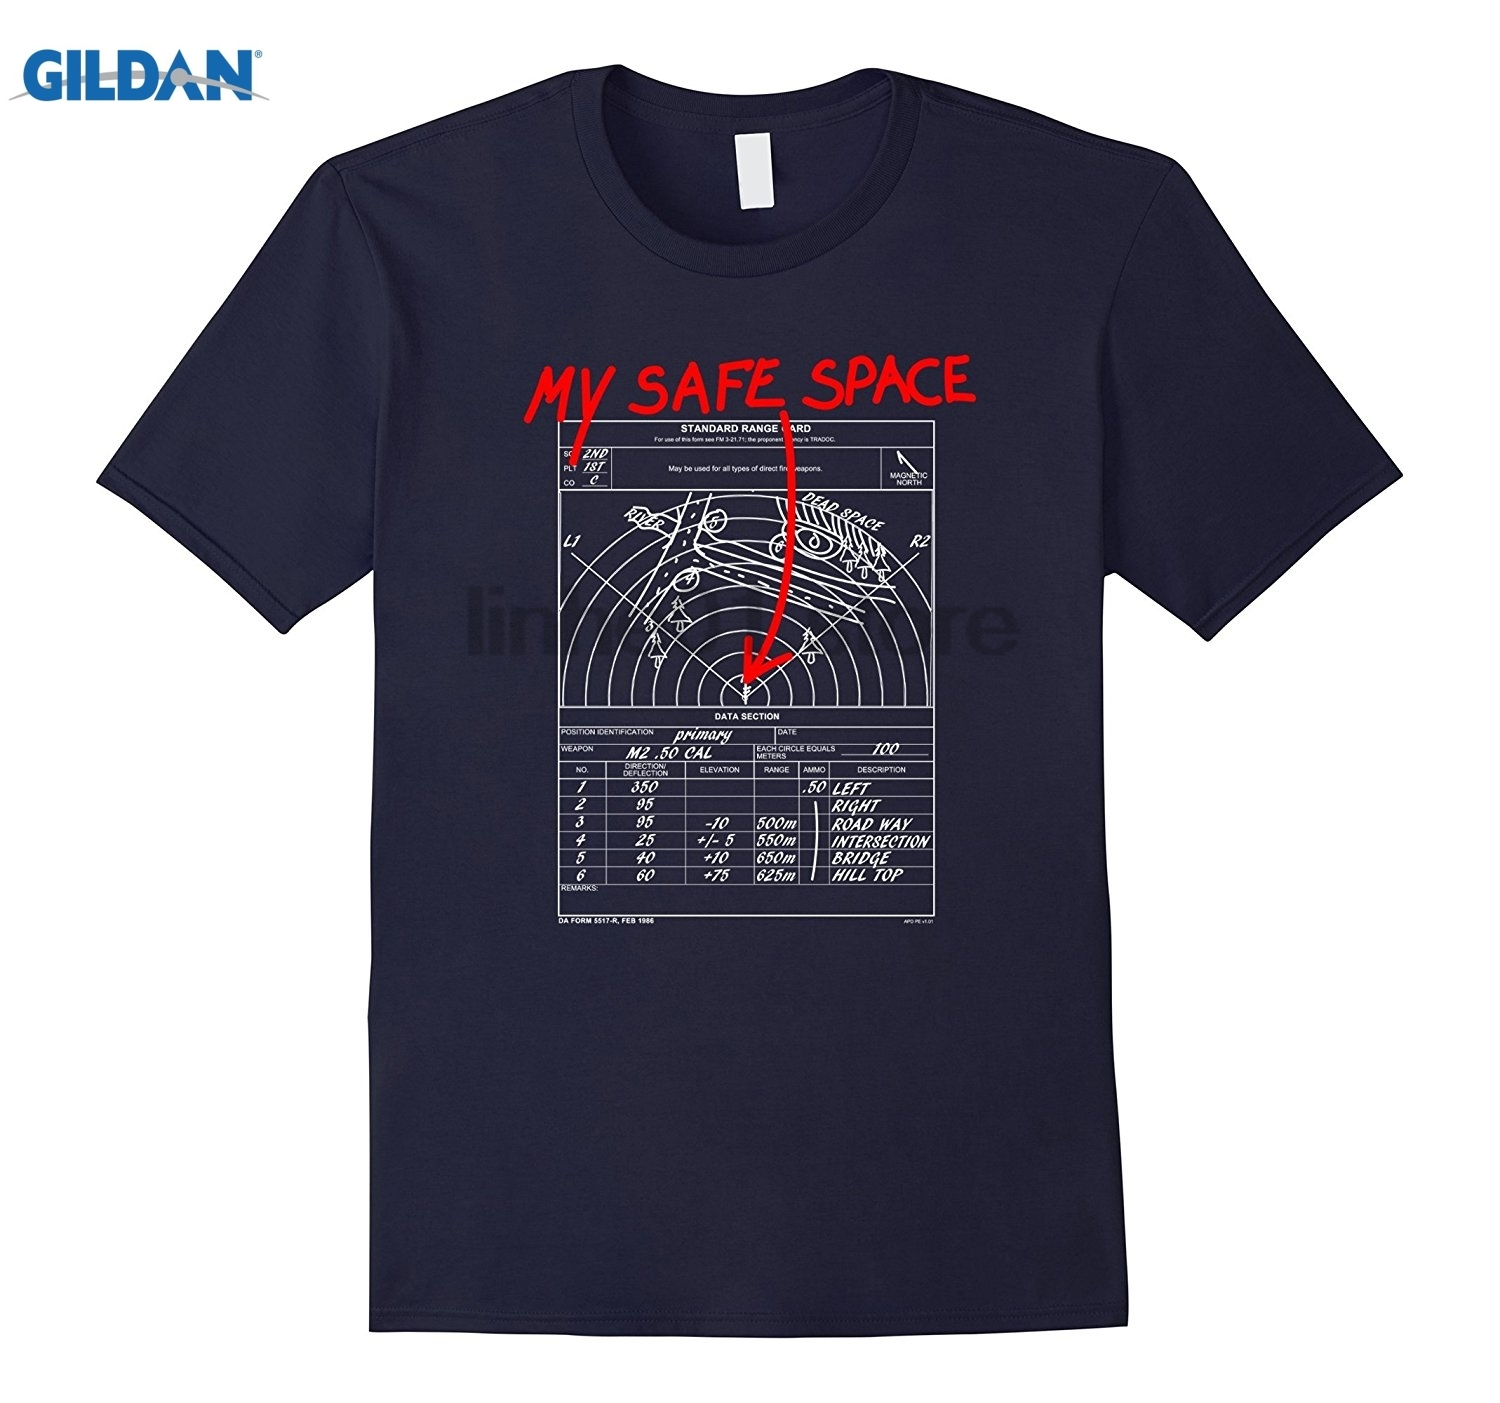 GILDAN Mens My Safe Space - Range Card Shirt summer dress T-shirt Womens T-shirt ...